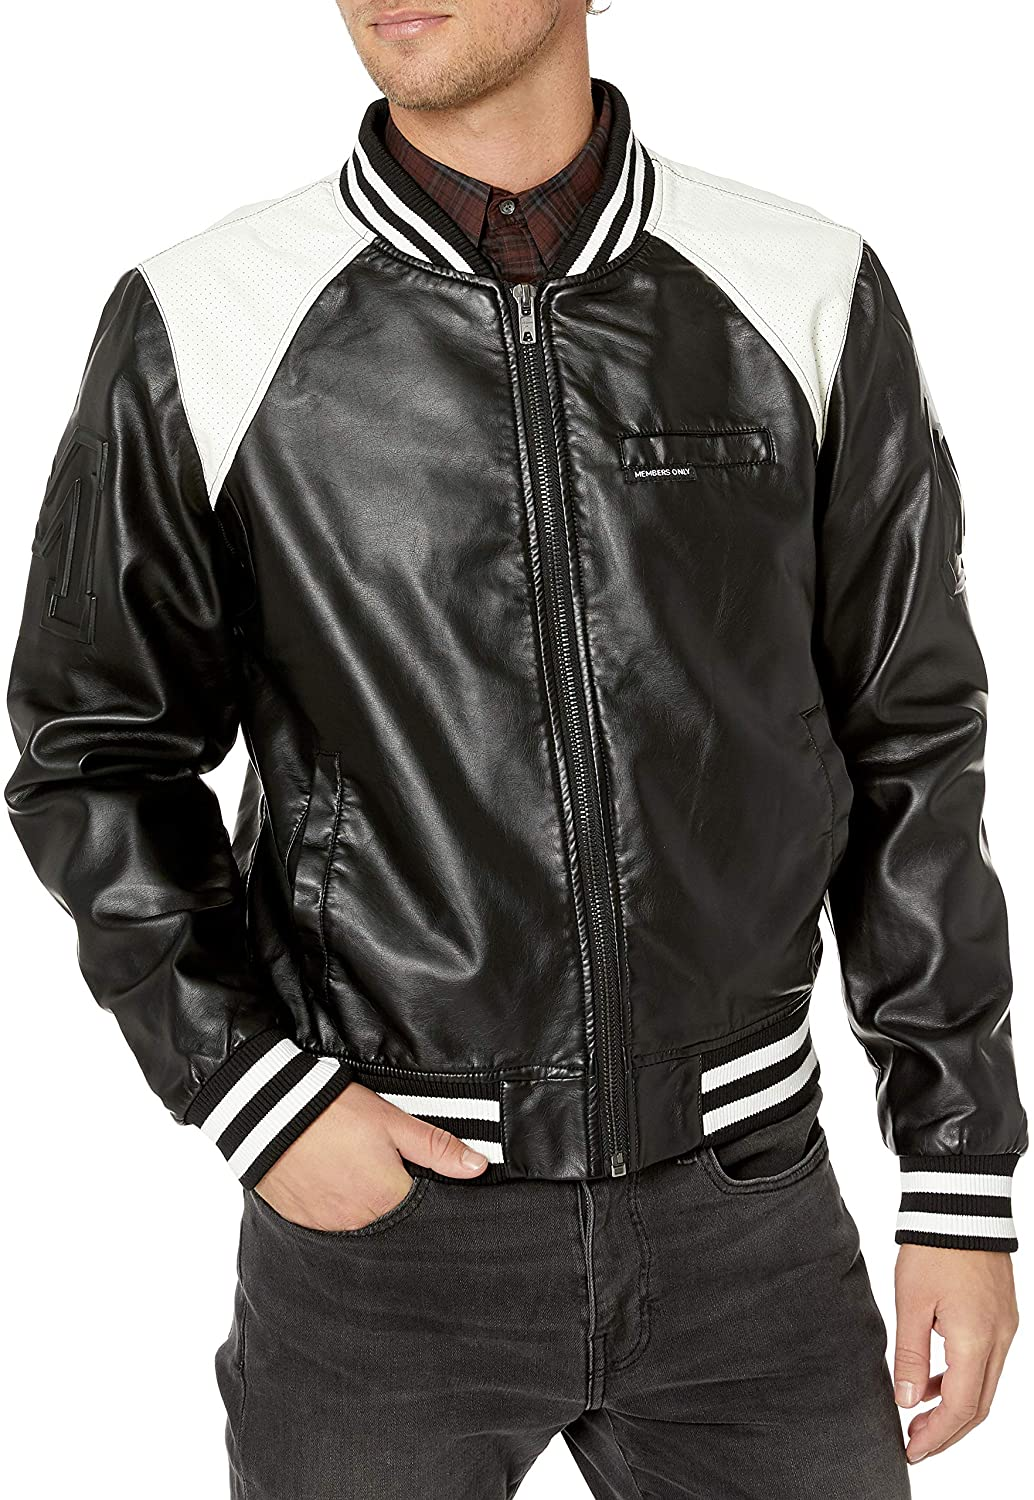 80s Windbreakers, Jackets, Coats Members Only Mens Vegan Leather Bomber $69.00 AT vintagedancer.com